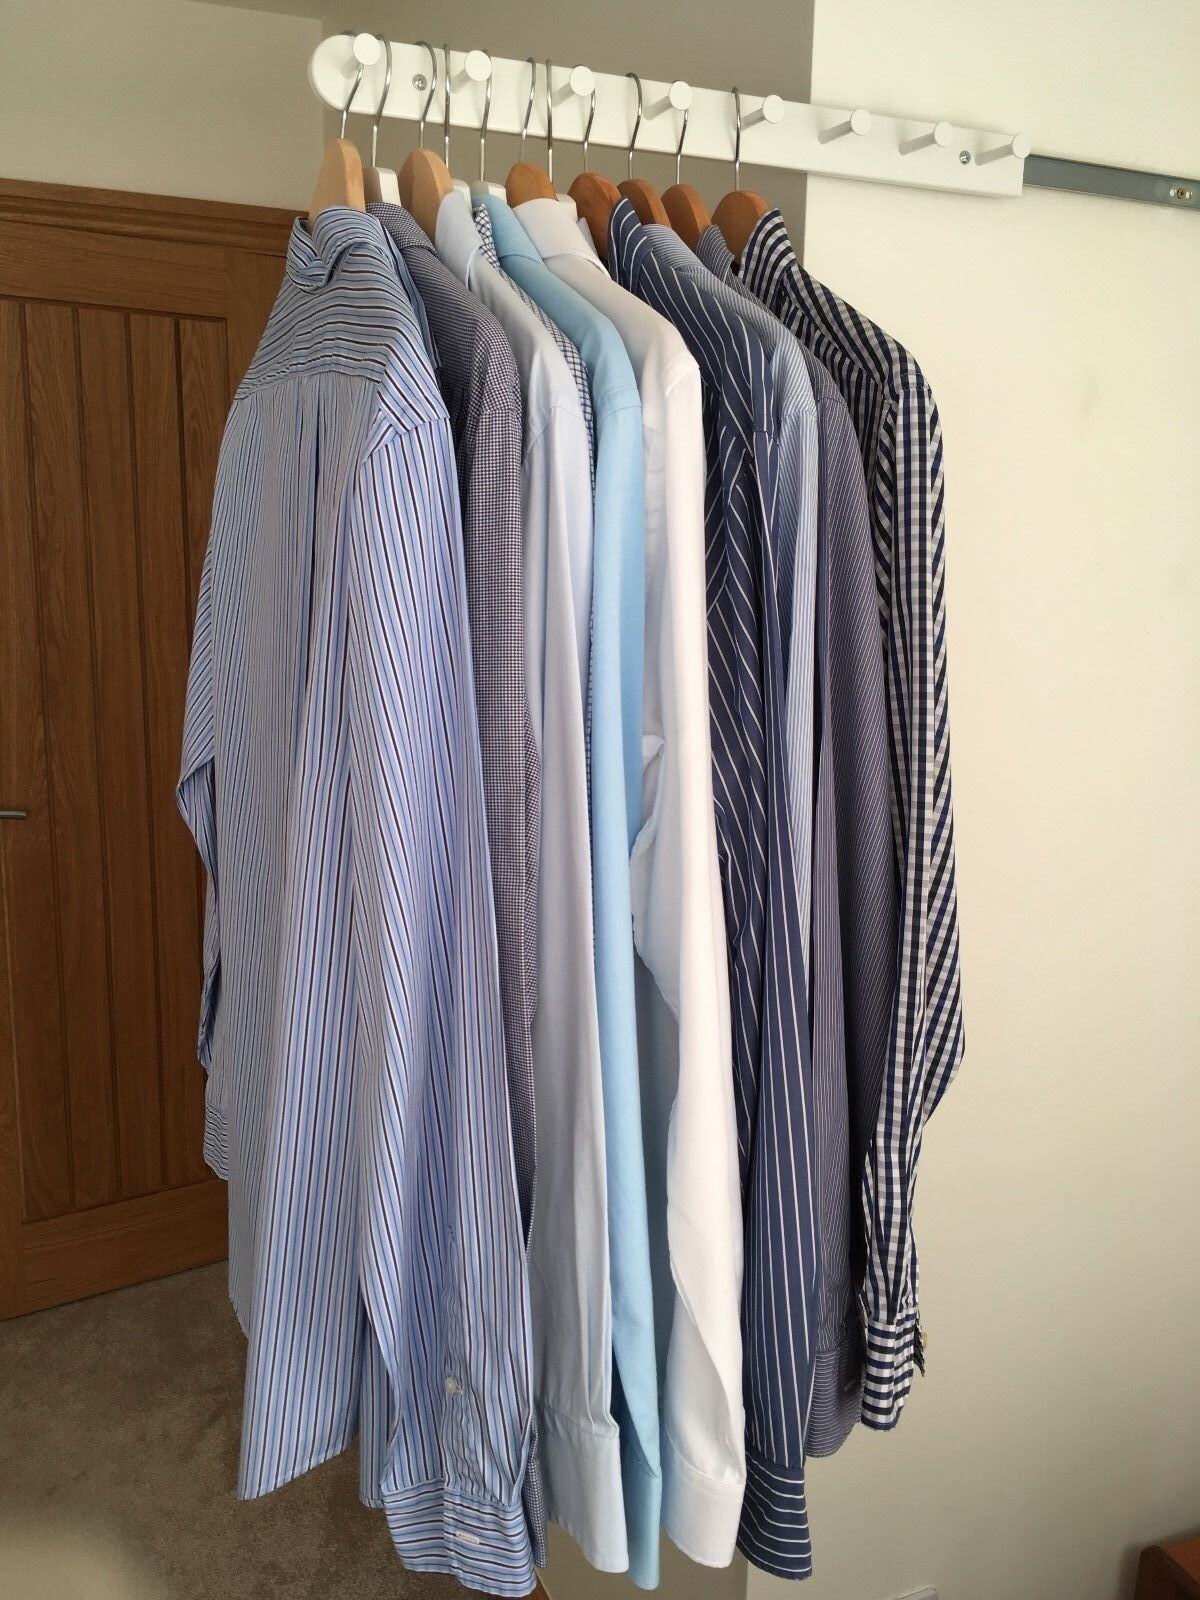 A collection of  Herren Shirts (8 items) - perfect condition